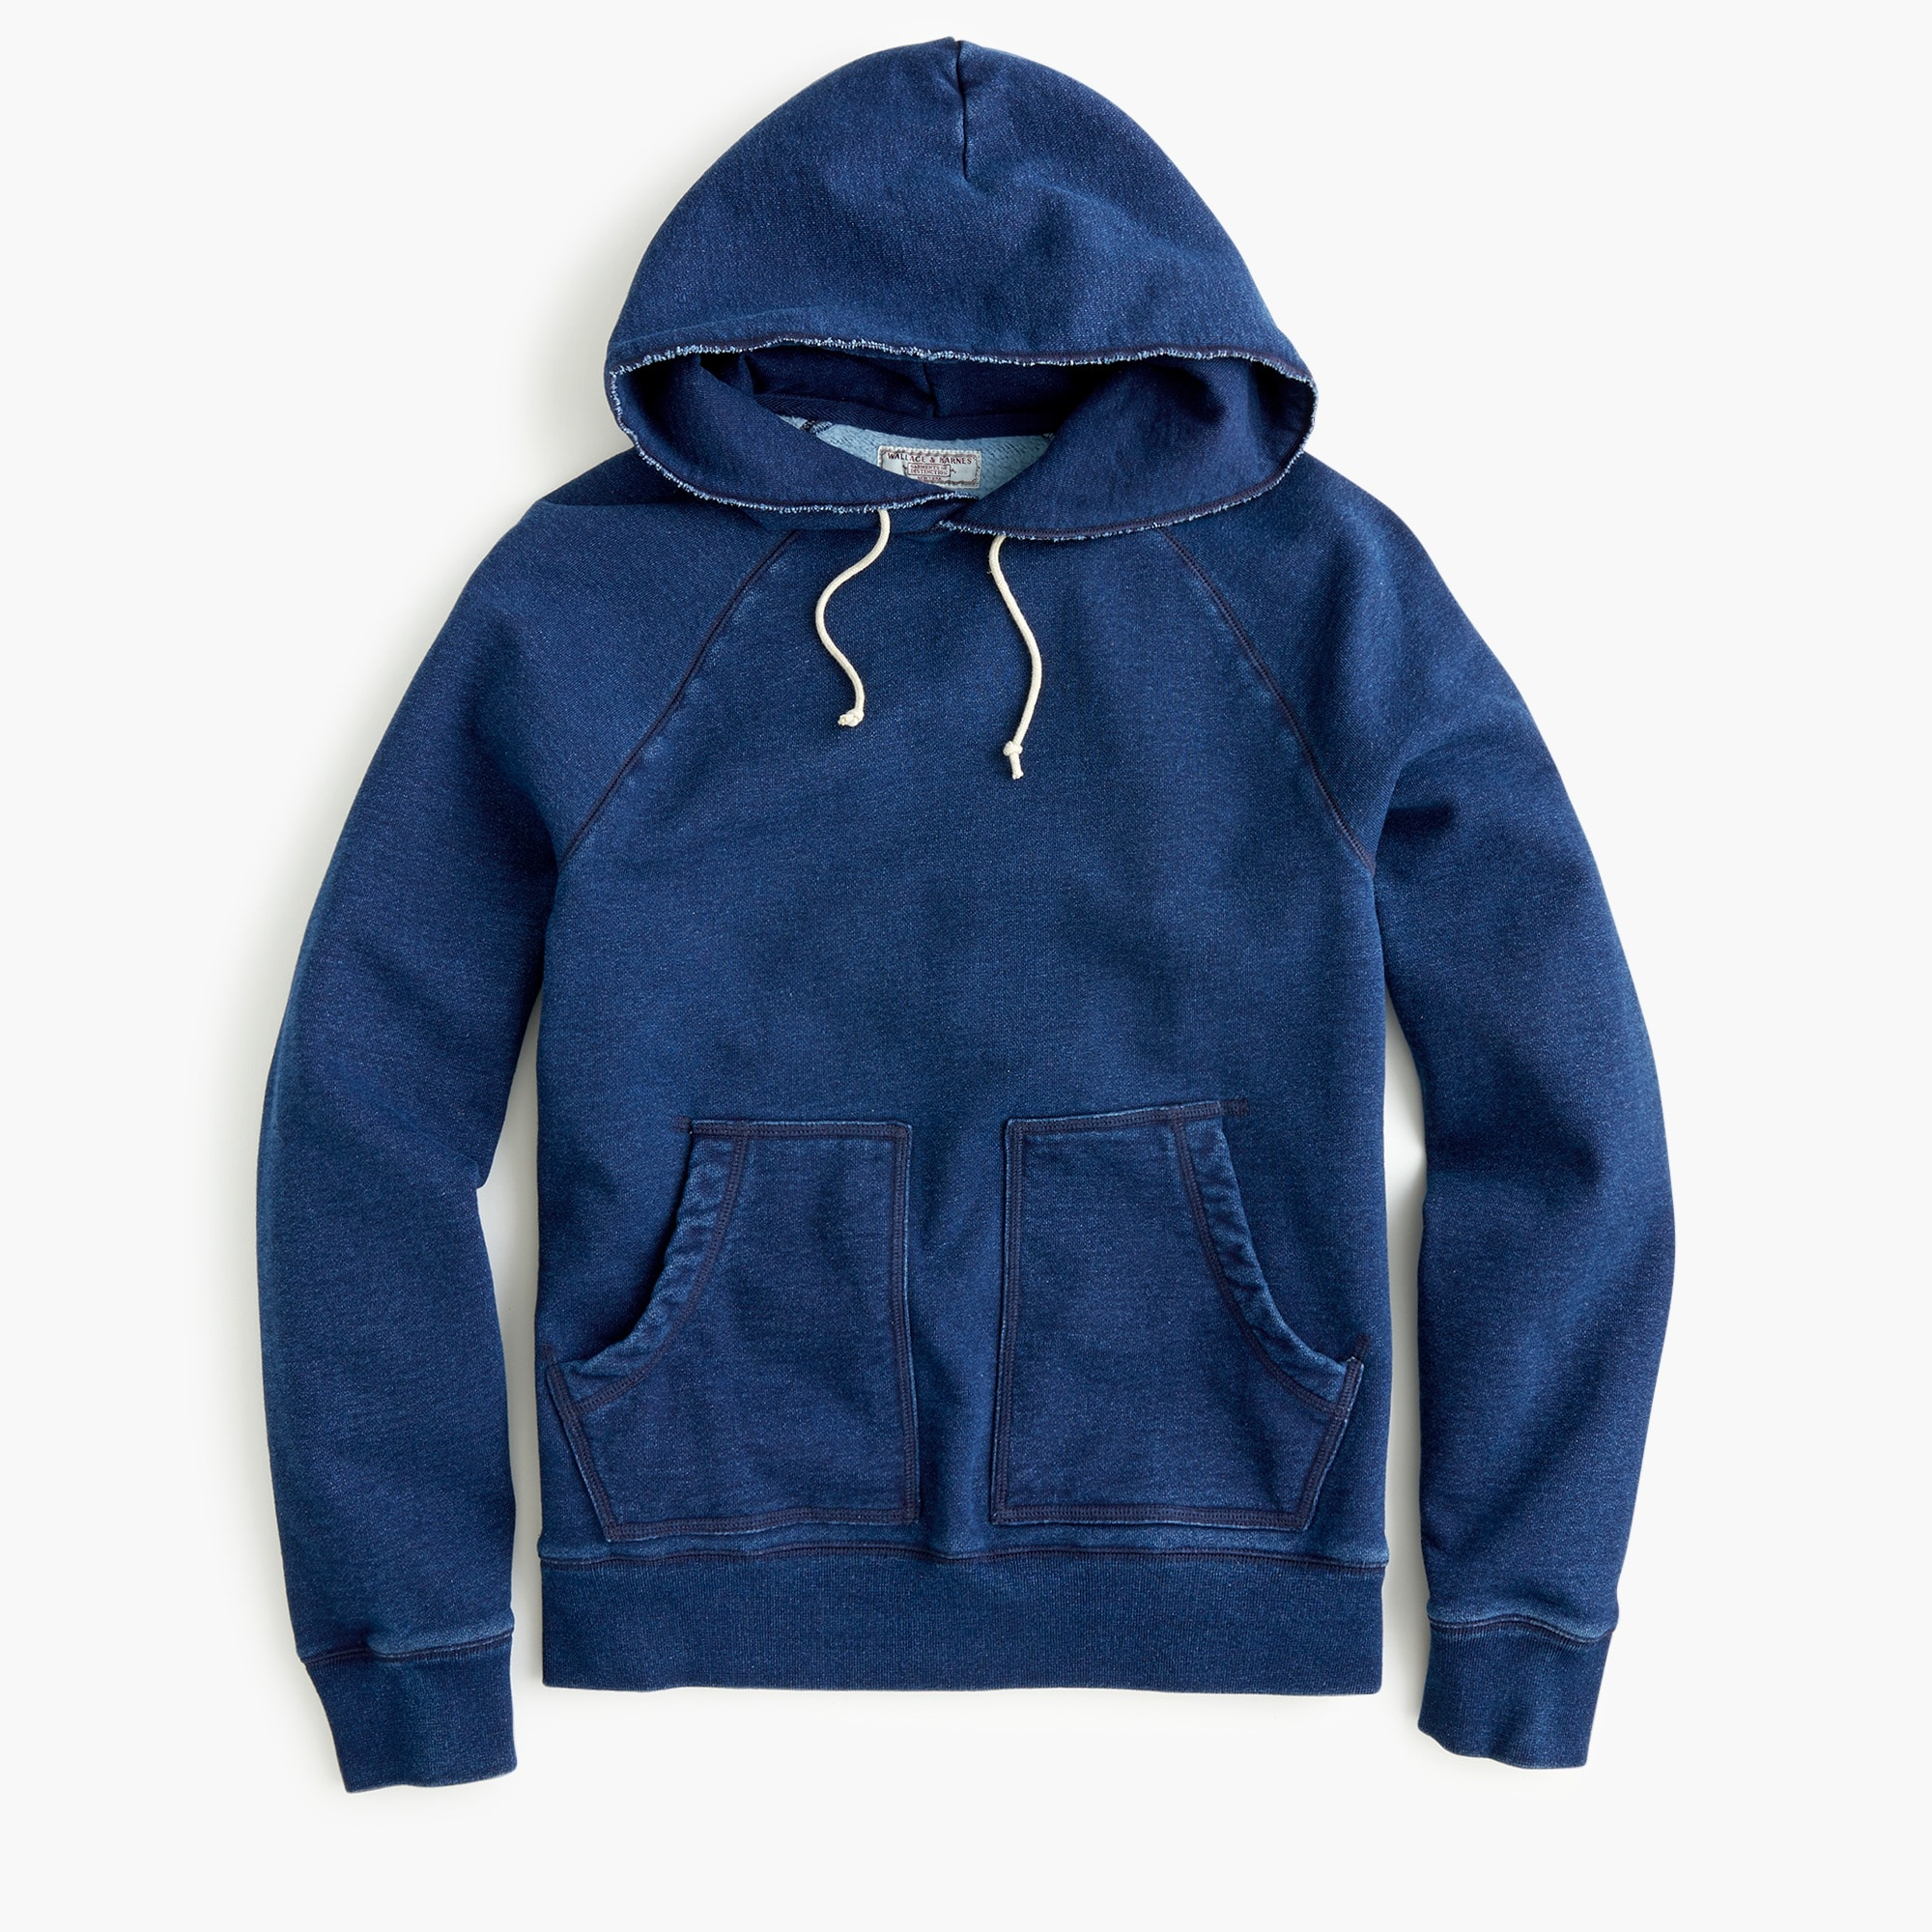 Wallace & Barnes fleece hoodie in indigo wash